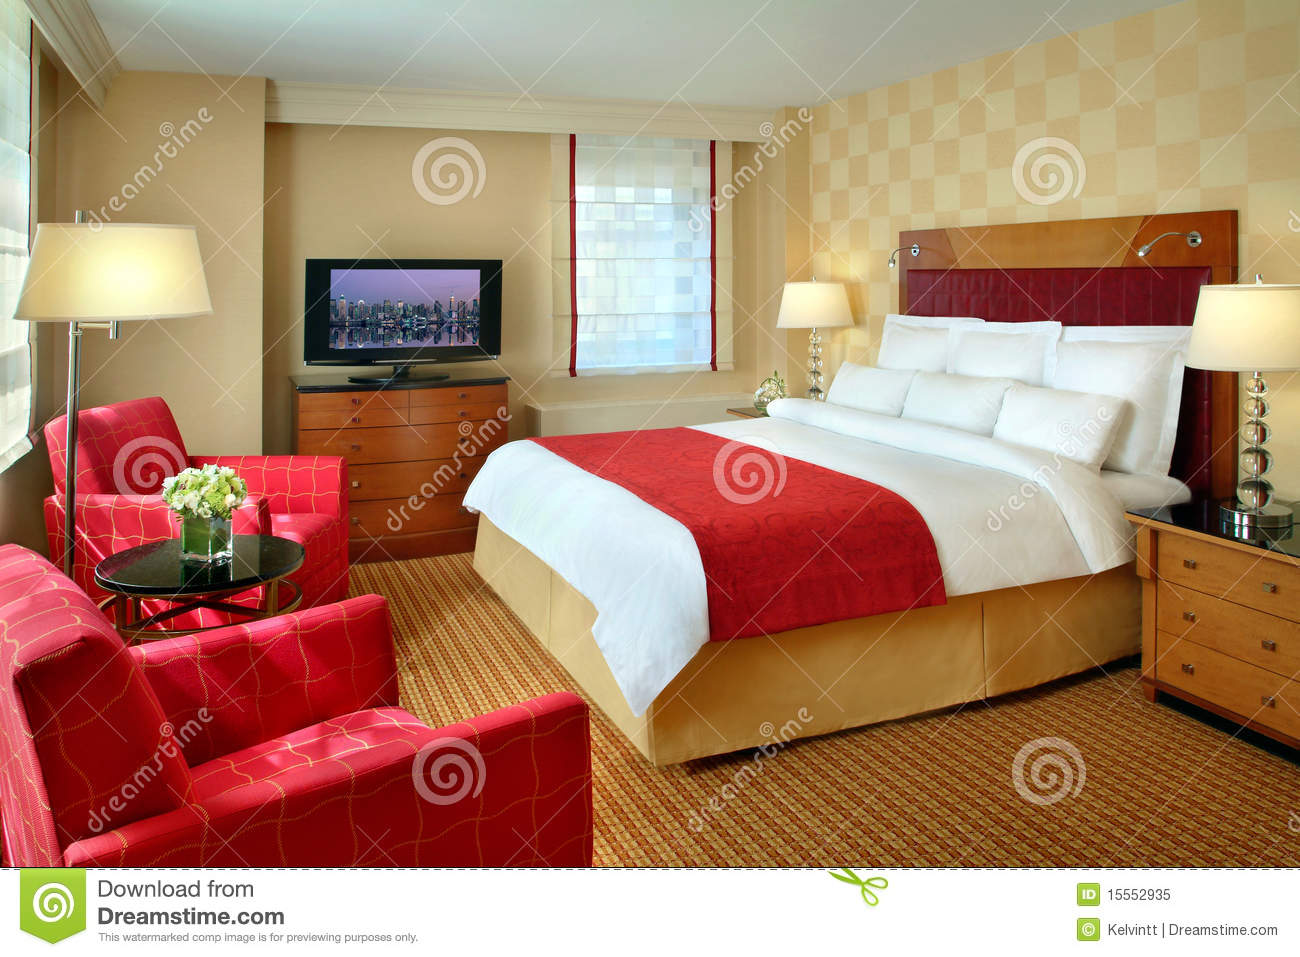 Hotel room interior stock image image of feng bedding for Hotel room interior